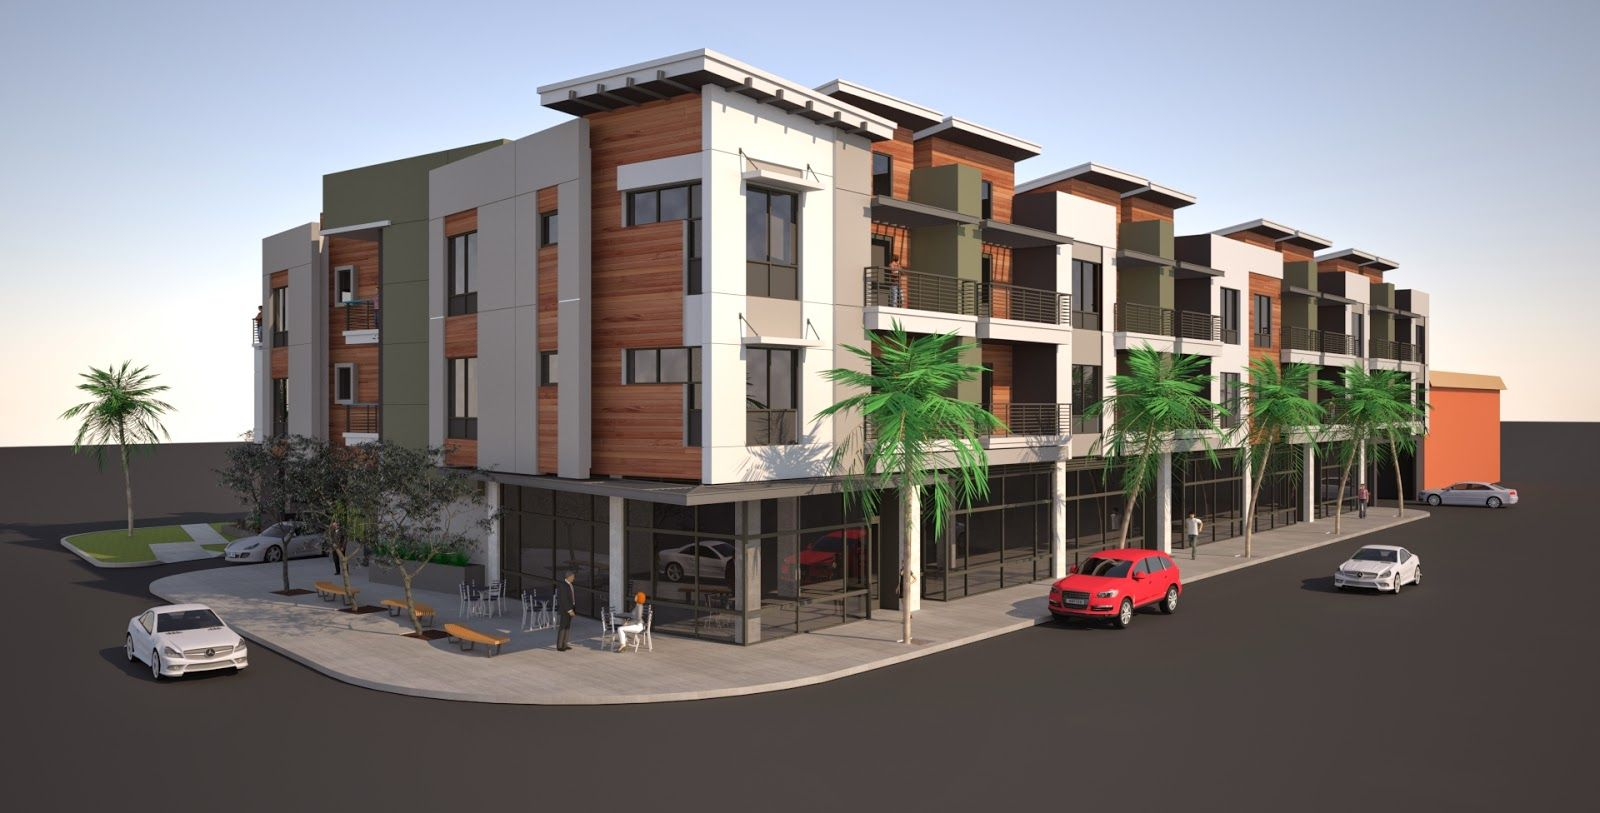 A mixed use complex featuring 30 residential units and for Apartment complex building plans